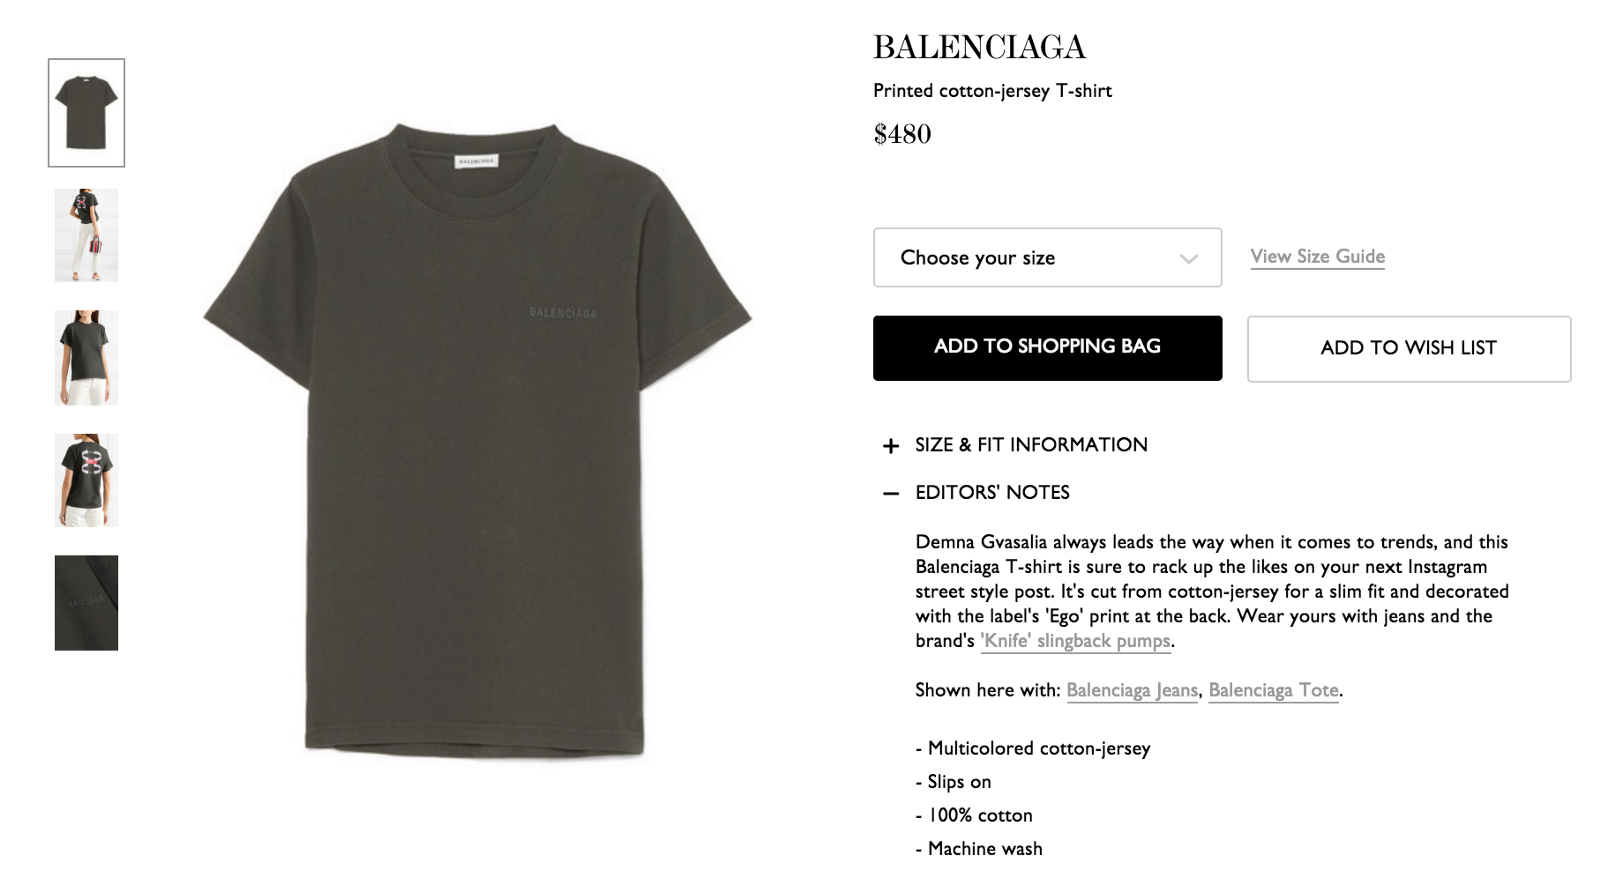 7dbd8e06a894 $480 for a plain T-shirt? Maybe if we talk about Instagram a millennial  would want to buy it?